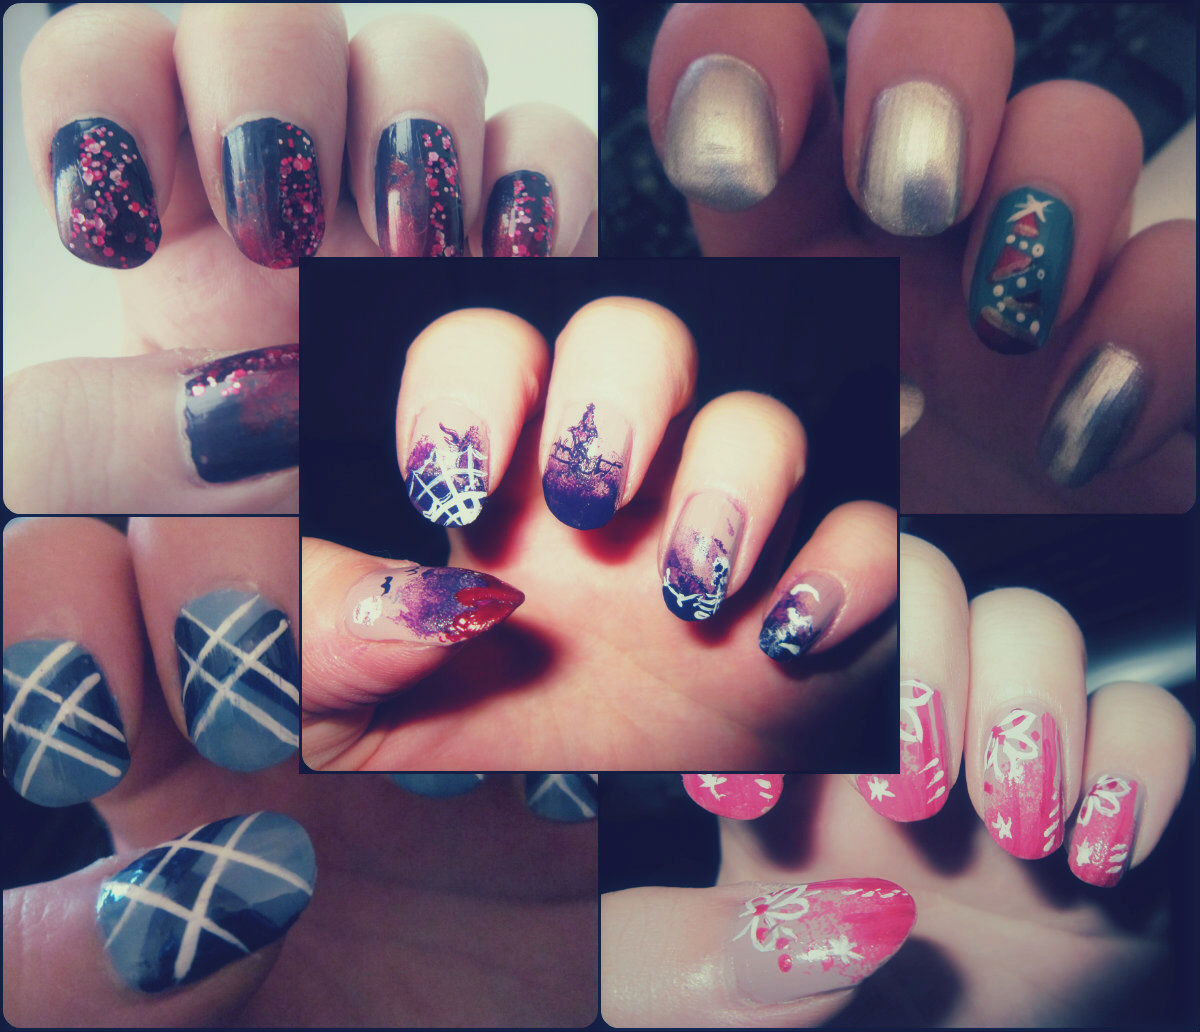 nail art by kaminary-san